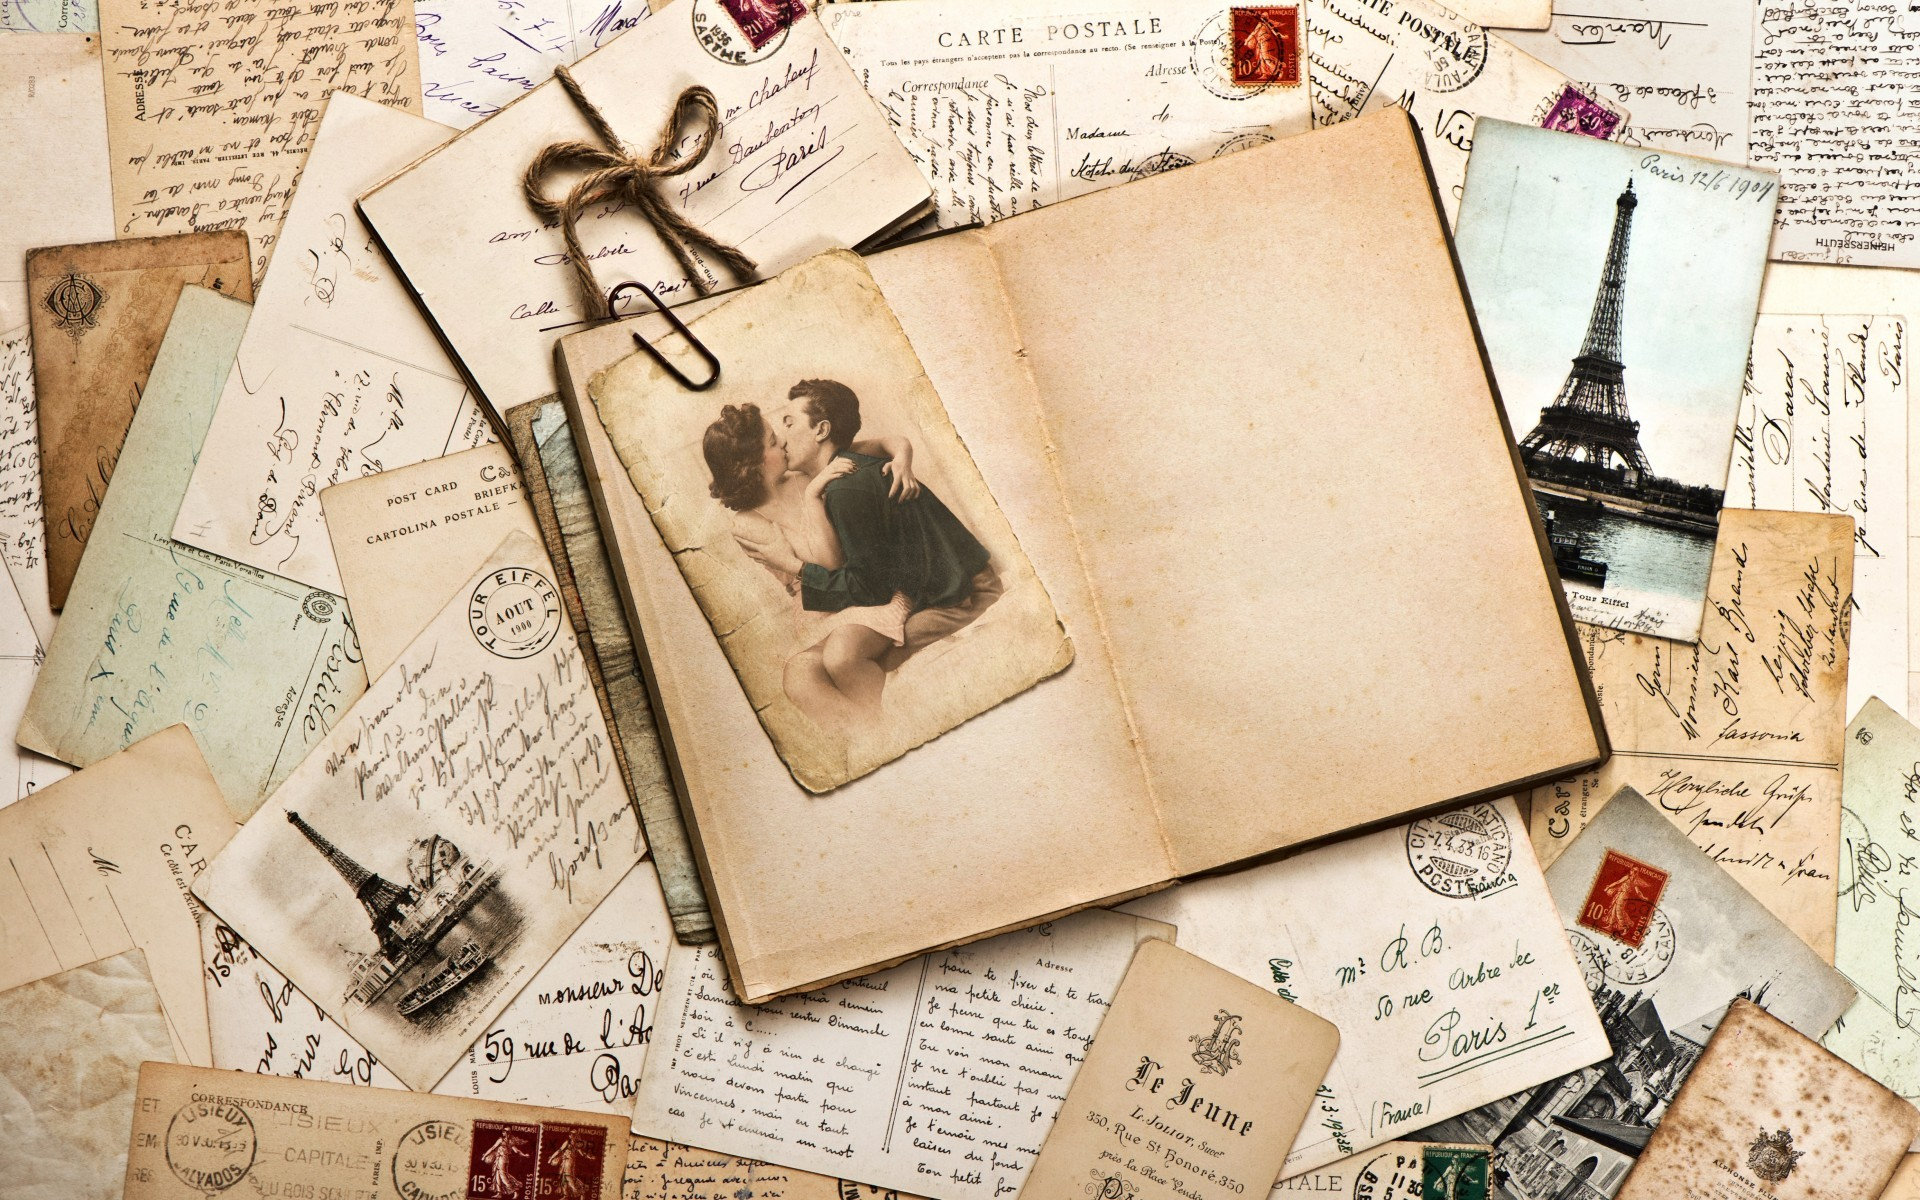 Free Download Vintage Love Letters Wallpaper 44402